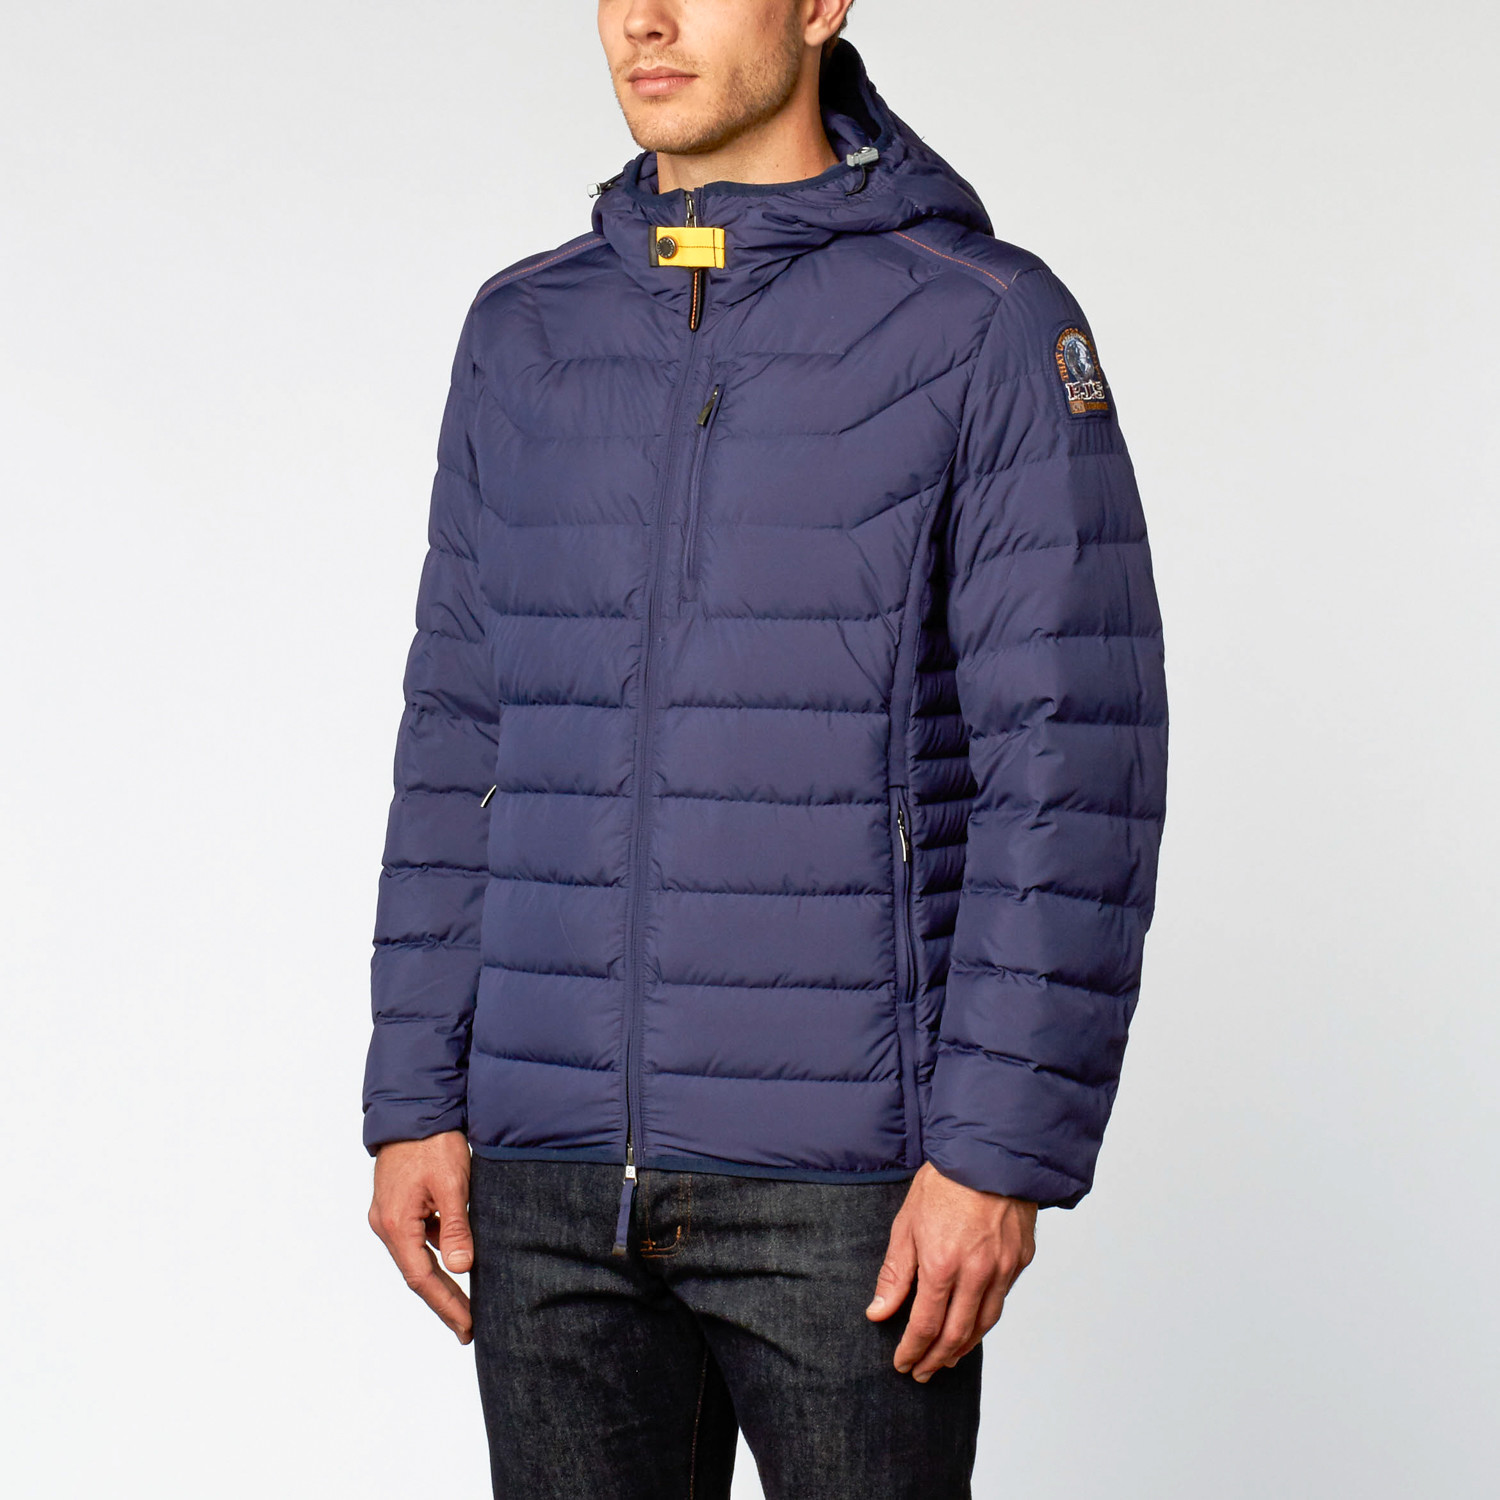 Last Minute Quilted Down Jacket // Dark Indigo (S)